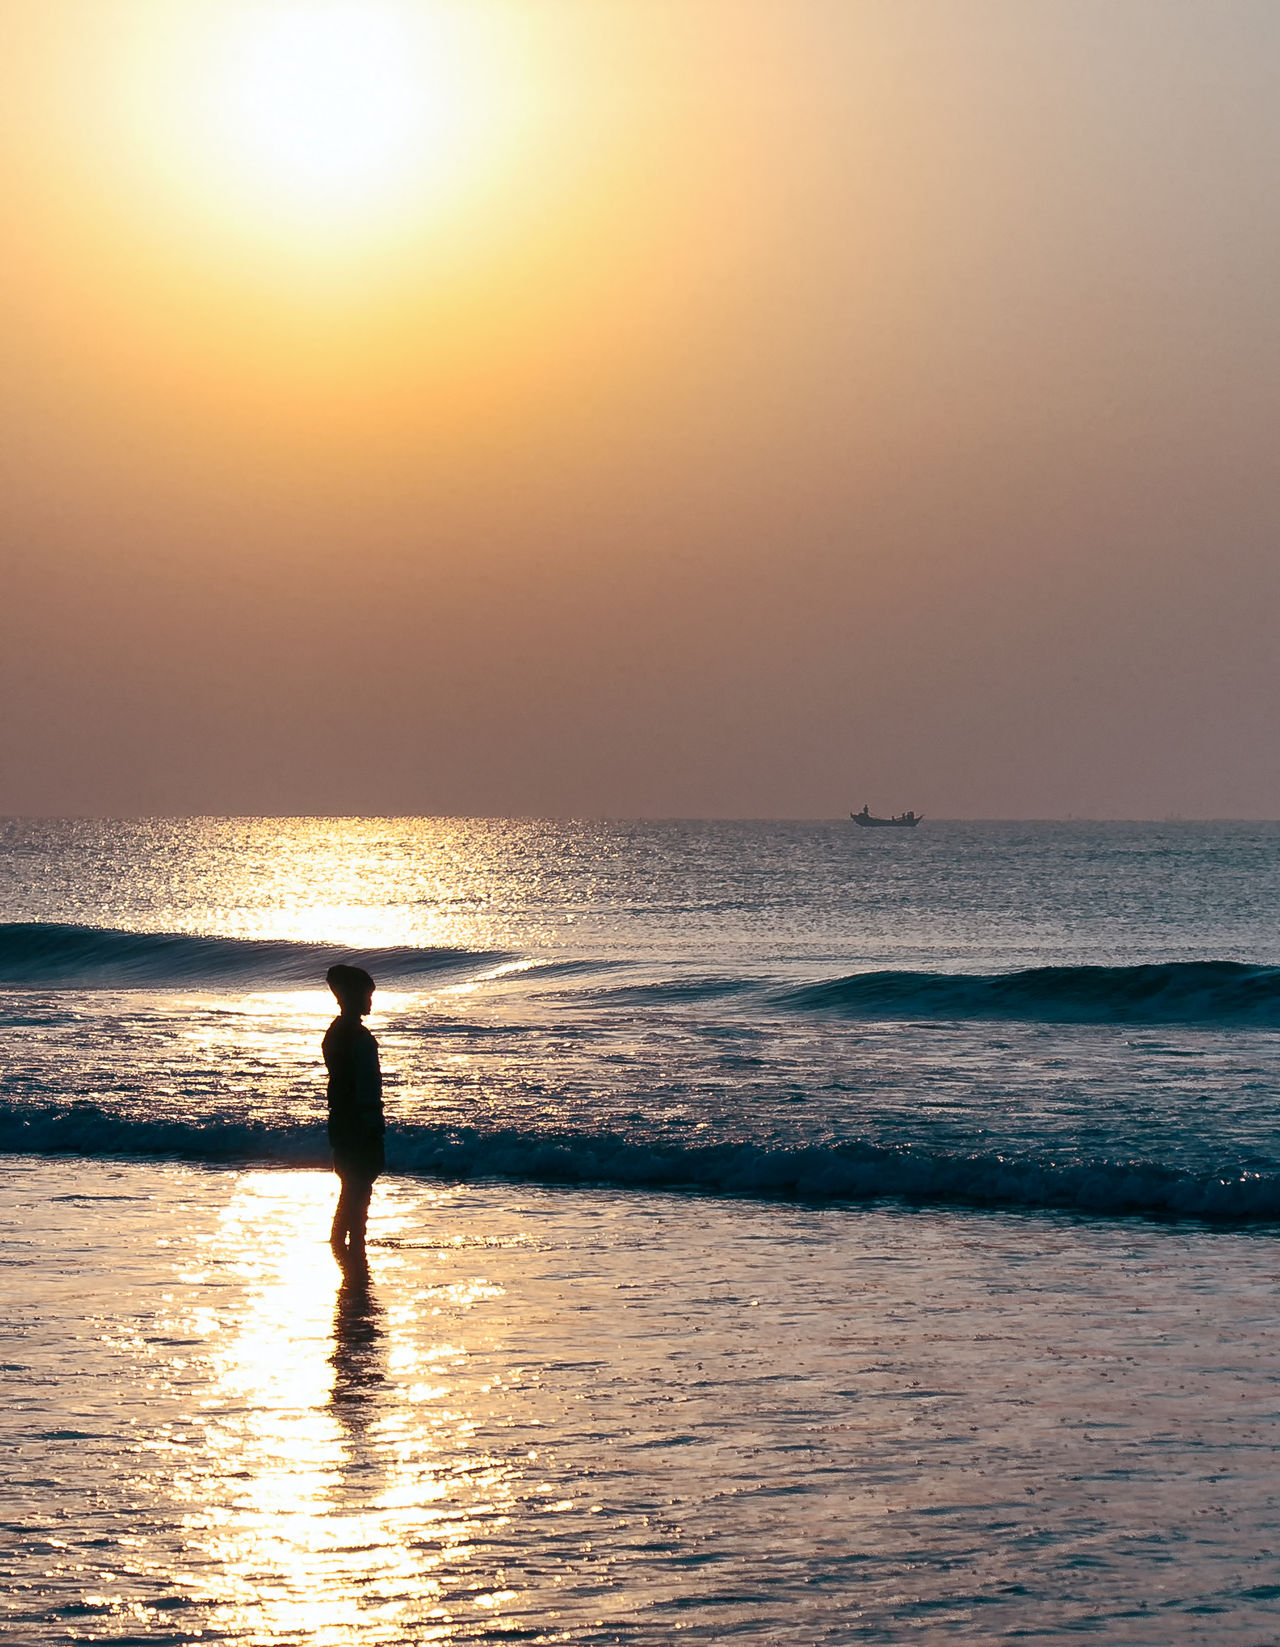 Alone under the sun! Silhouette Sea Water Standing One Person Beach Outdoors Tranquil Scene Scenics Travel Serene Sunlit Nature Beauty In Nature Tranquility Travel Photography Peaceful Miles Away Tranquil Moment Sunrise Colors Sunrise - Dawn Sunrise Dawn Morning